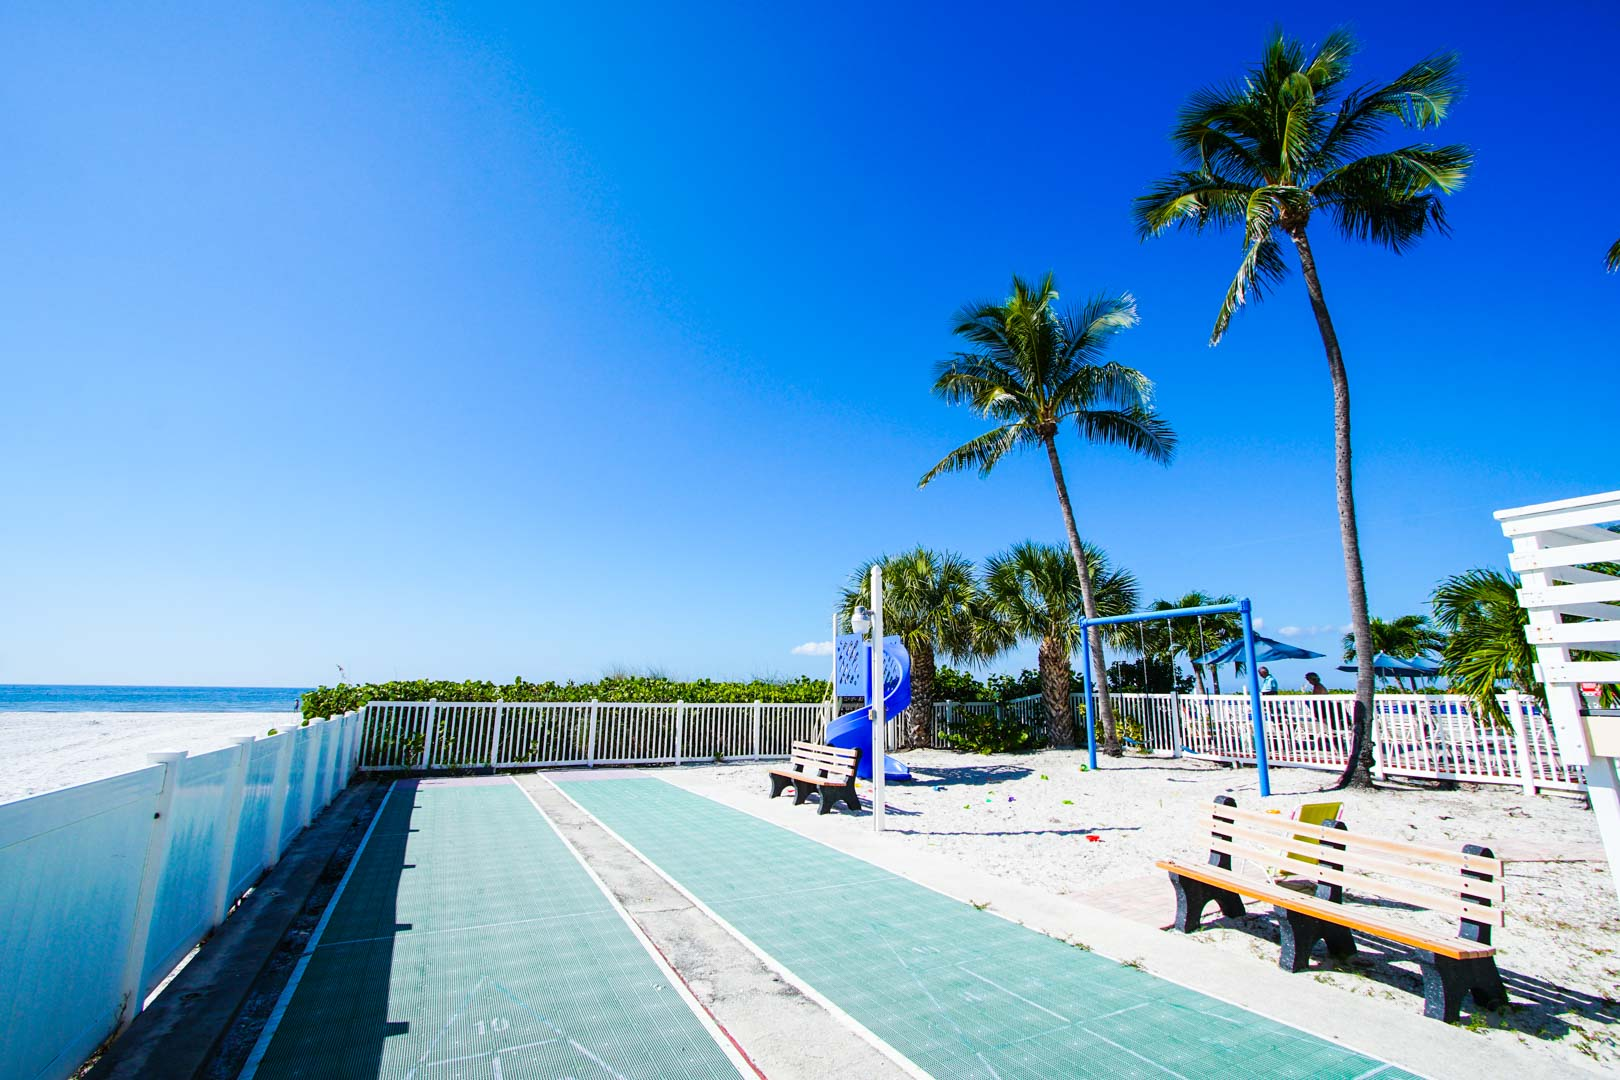 A playground facing the beach at VRI's Windward Passage Resort in Fort Myers Beach, Florida.